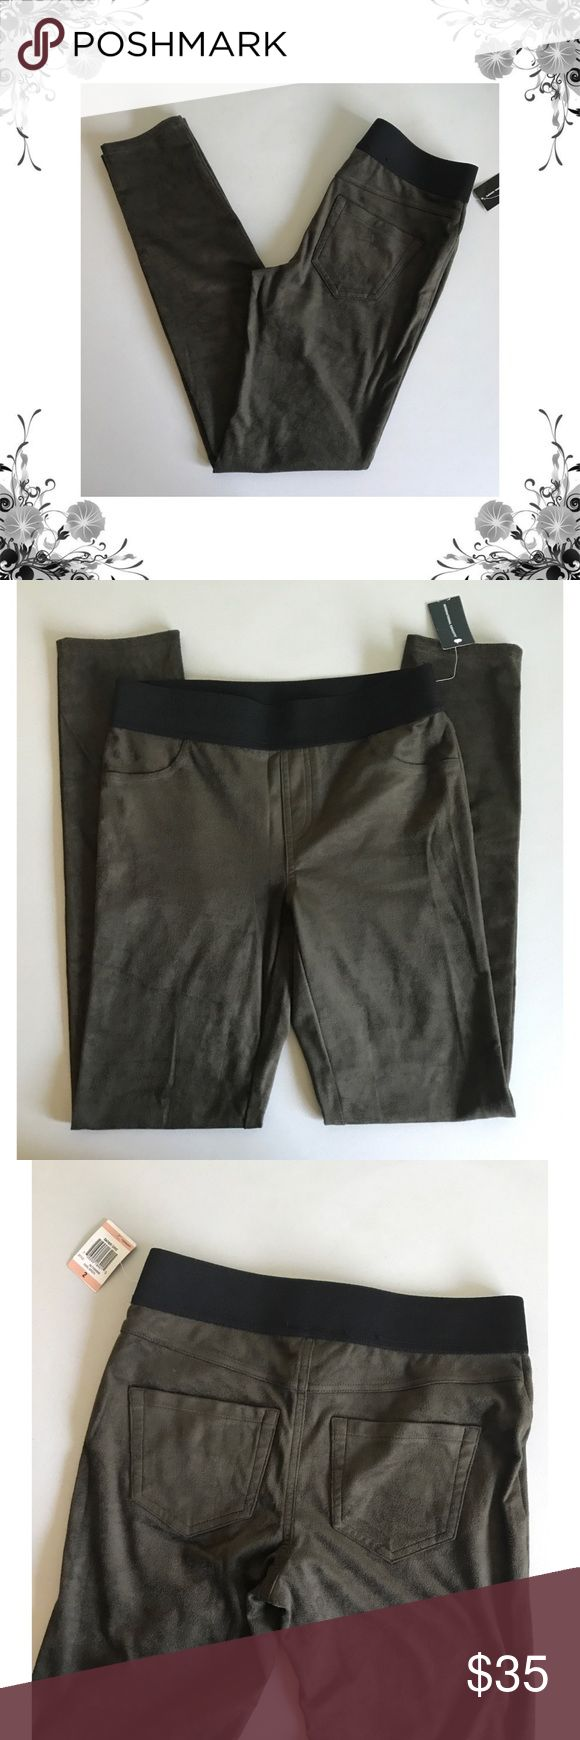 """{INC} Olive Green Faux Suede Pull-On Pants Waist across measures approx 13.5"""". Rise is approx 9"""". Inseam is approx 30"""". Polyester/Spandex. Fabric provides stretch. Faux suede fabric. Waistband is elasticized. Skinny leg. Regular fit. Price tag has been cut but is still intact. Bundle for discounts! Thank you for shopping my closet! Bin 73 INC International Concepts Pants Leggings"""